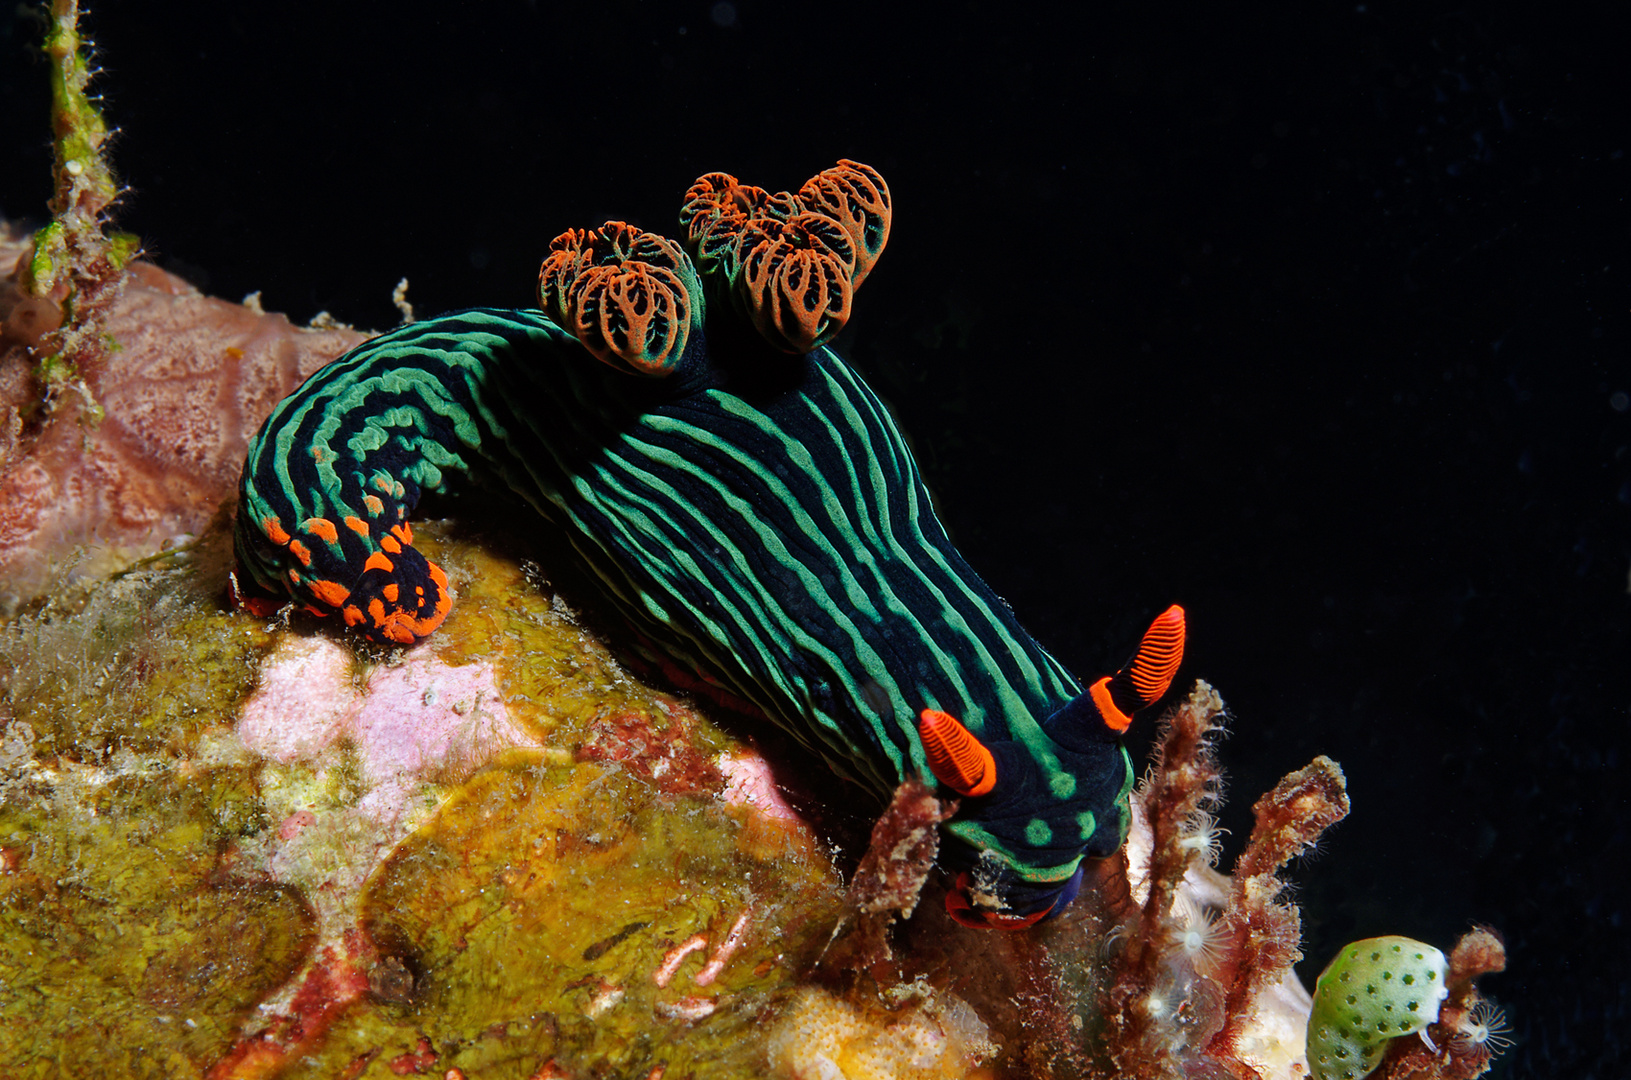 Variable Neonsternschnecke (Nembrotha kubaryana)